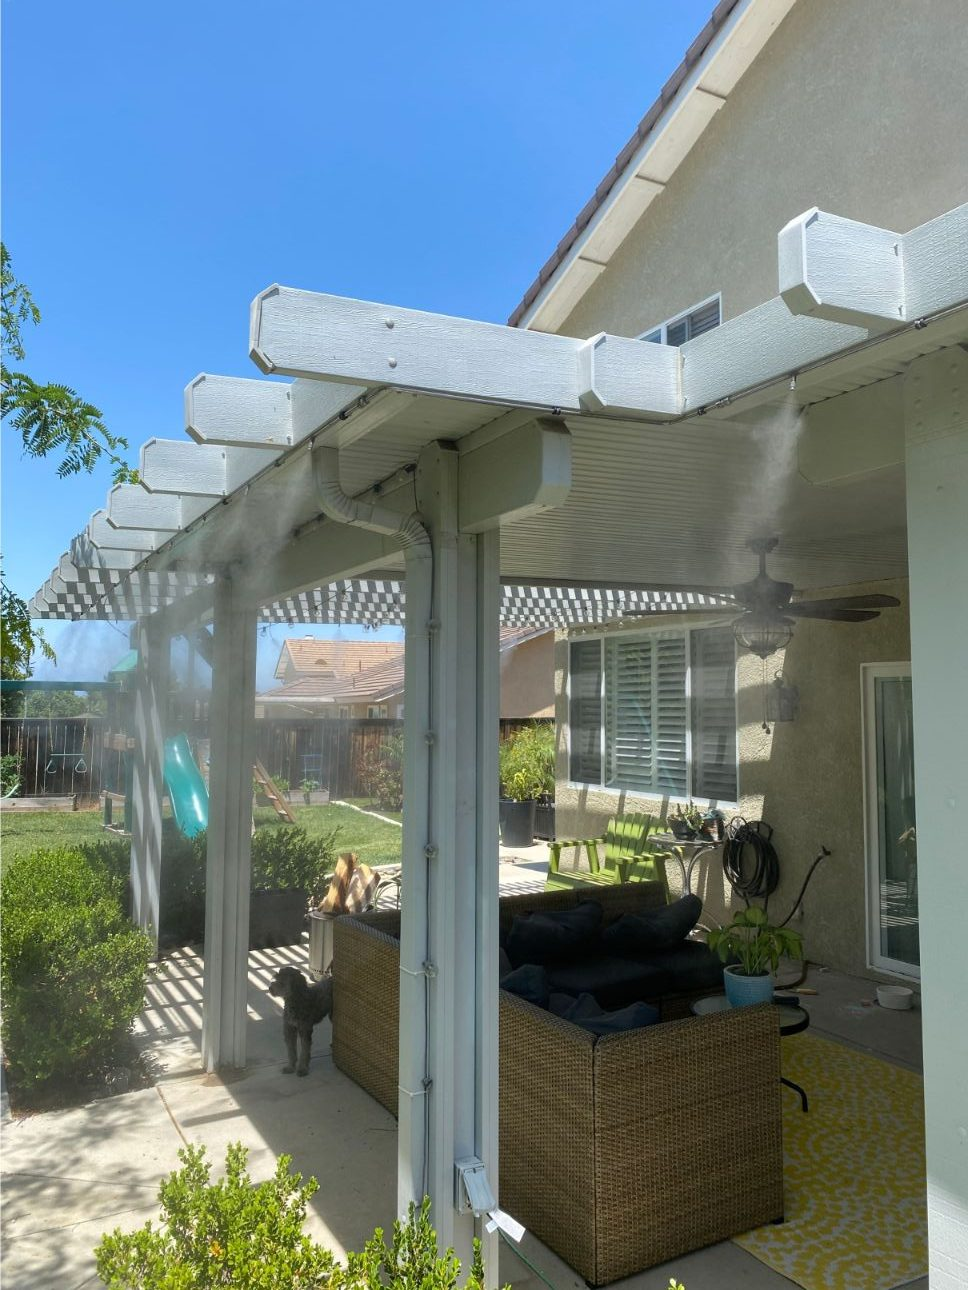 Big Fogg Patio Misters Are Easy To Use